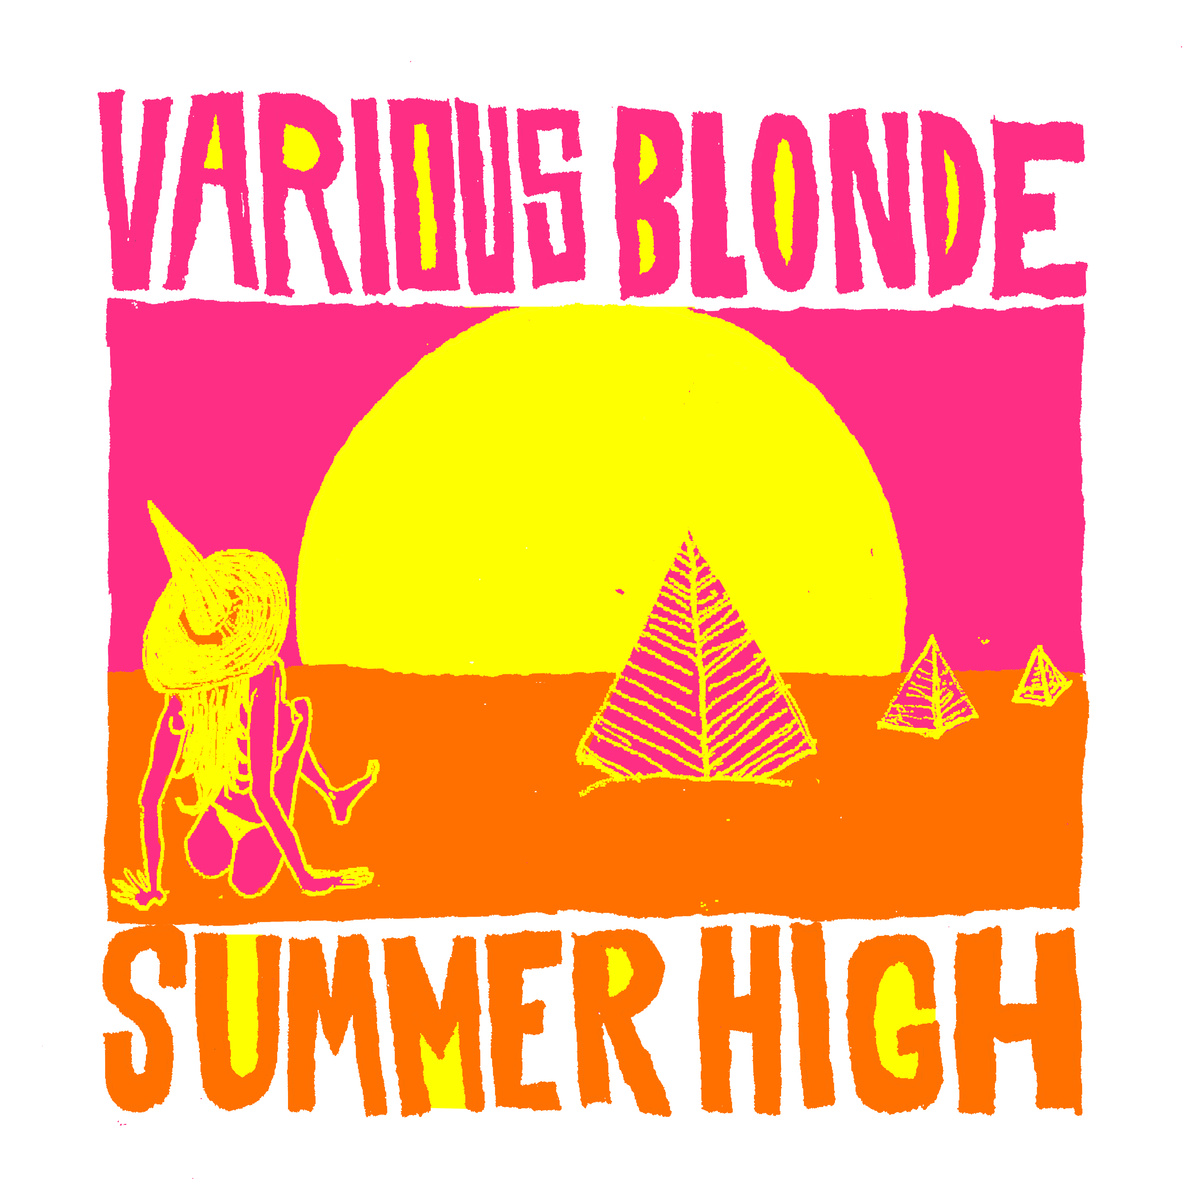 various blond - summer high.jpg